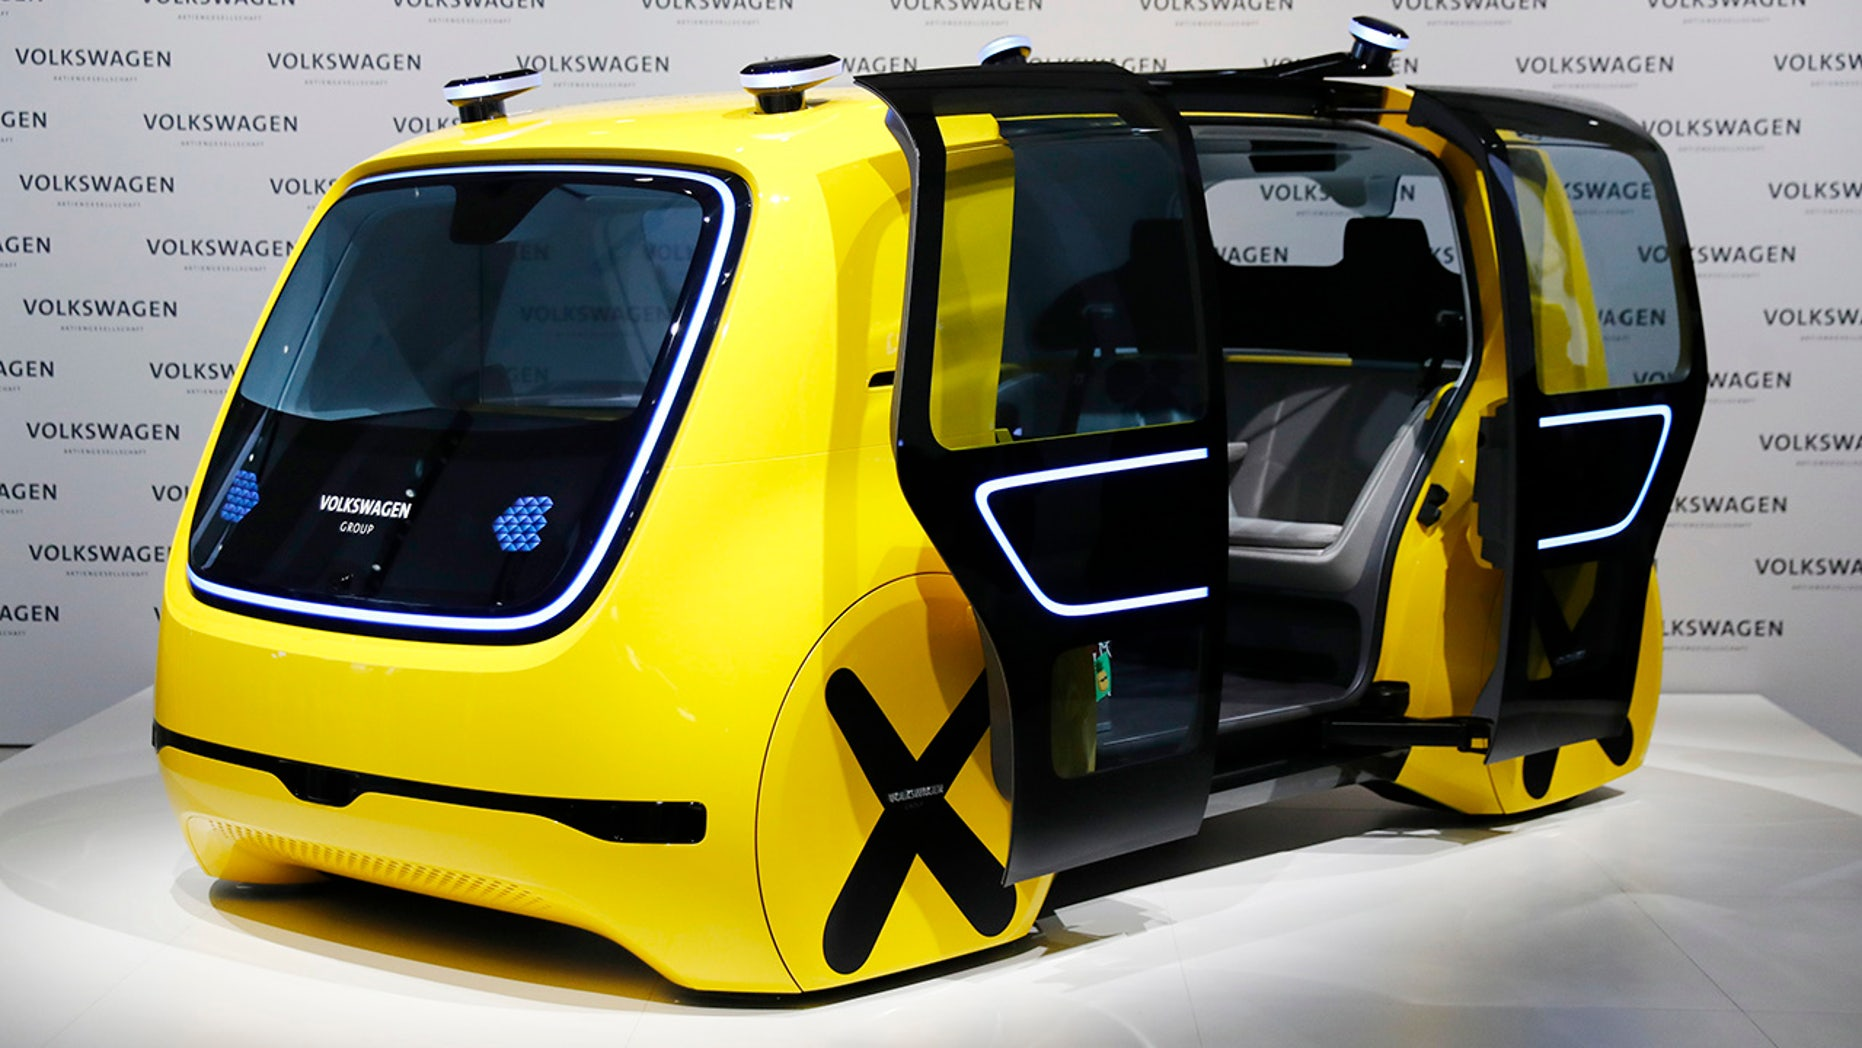 The VW Sedric is a self-driving shuttle headed for production.